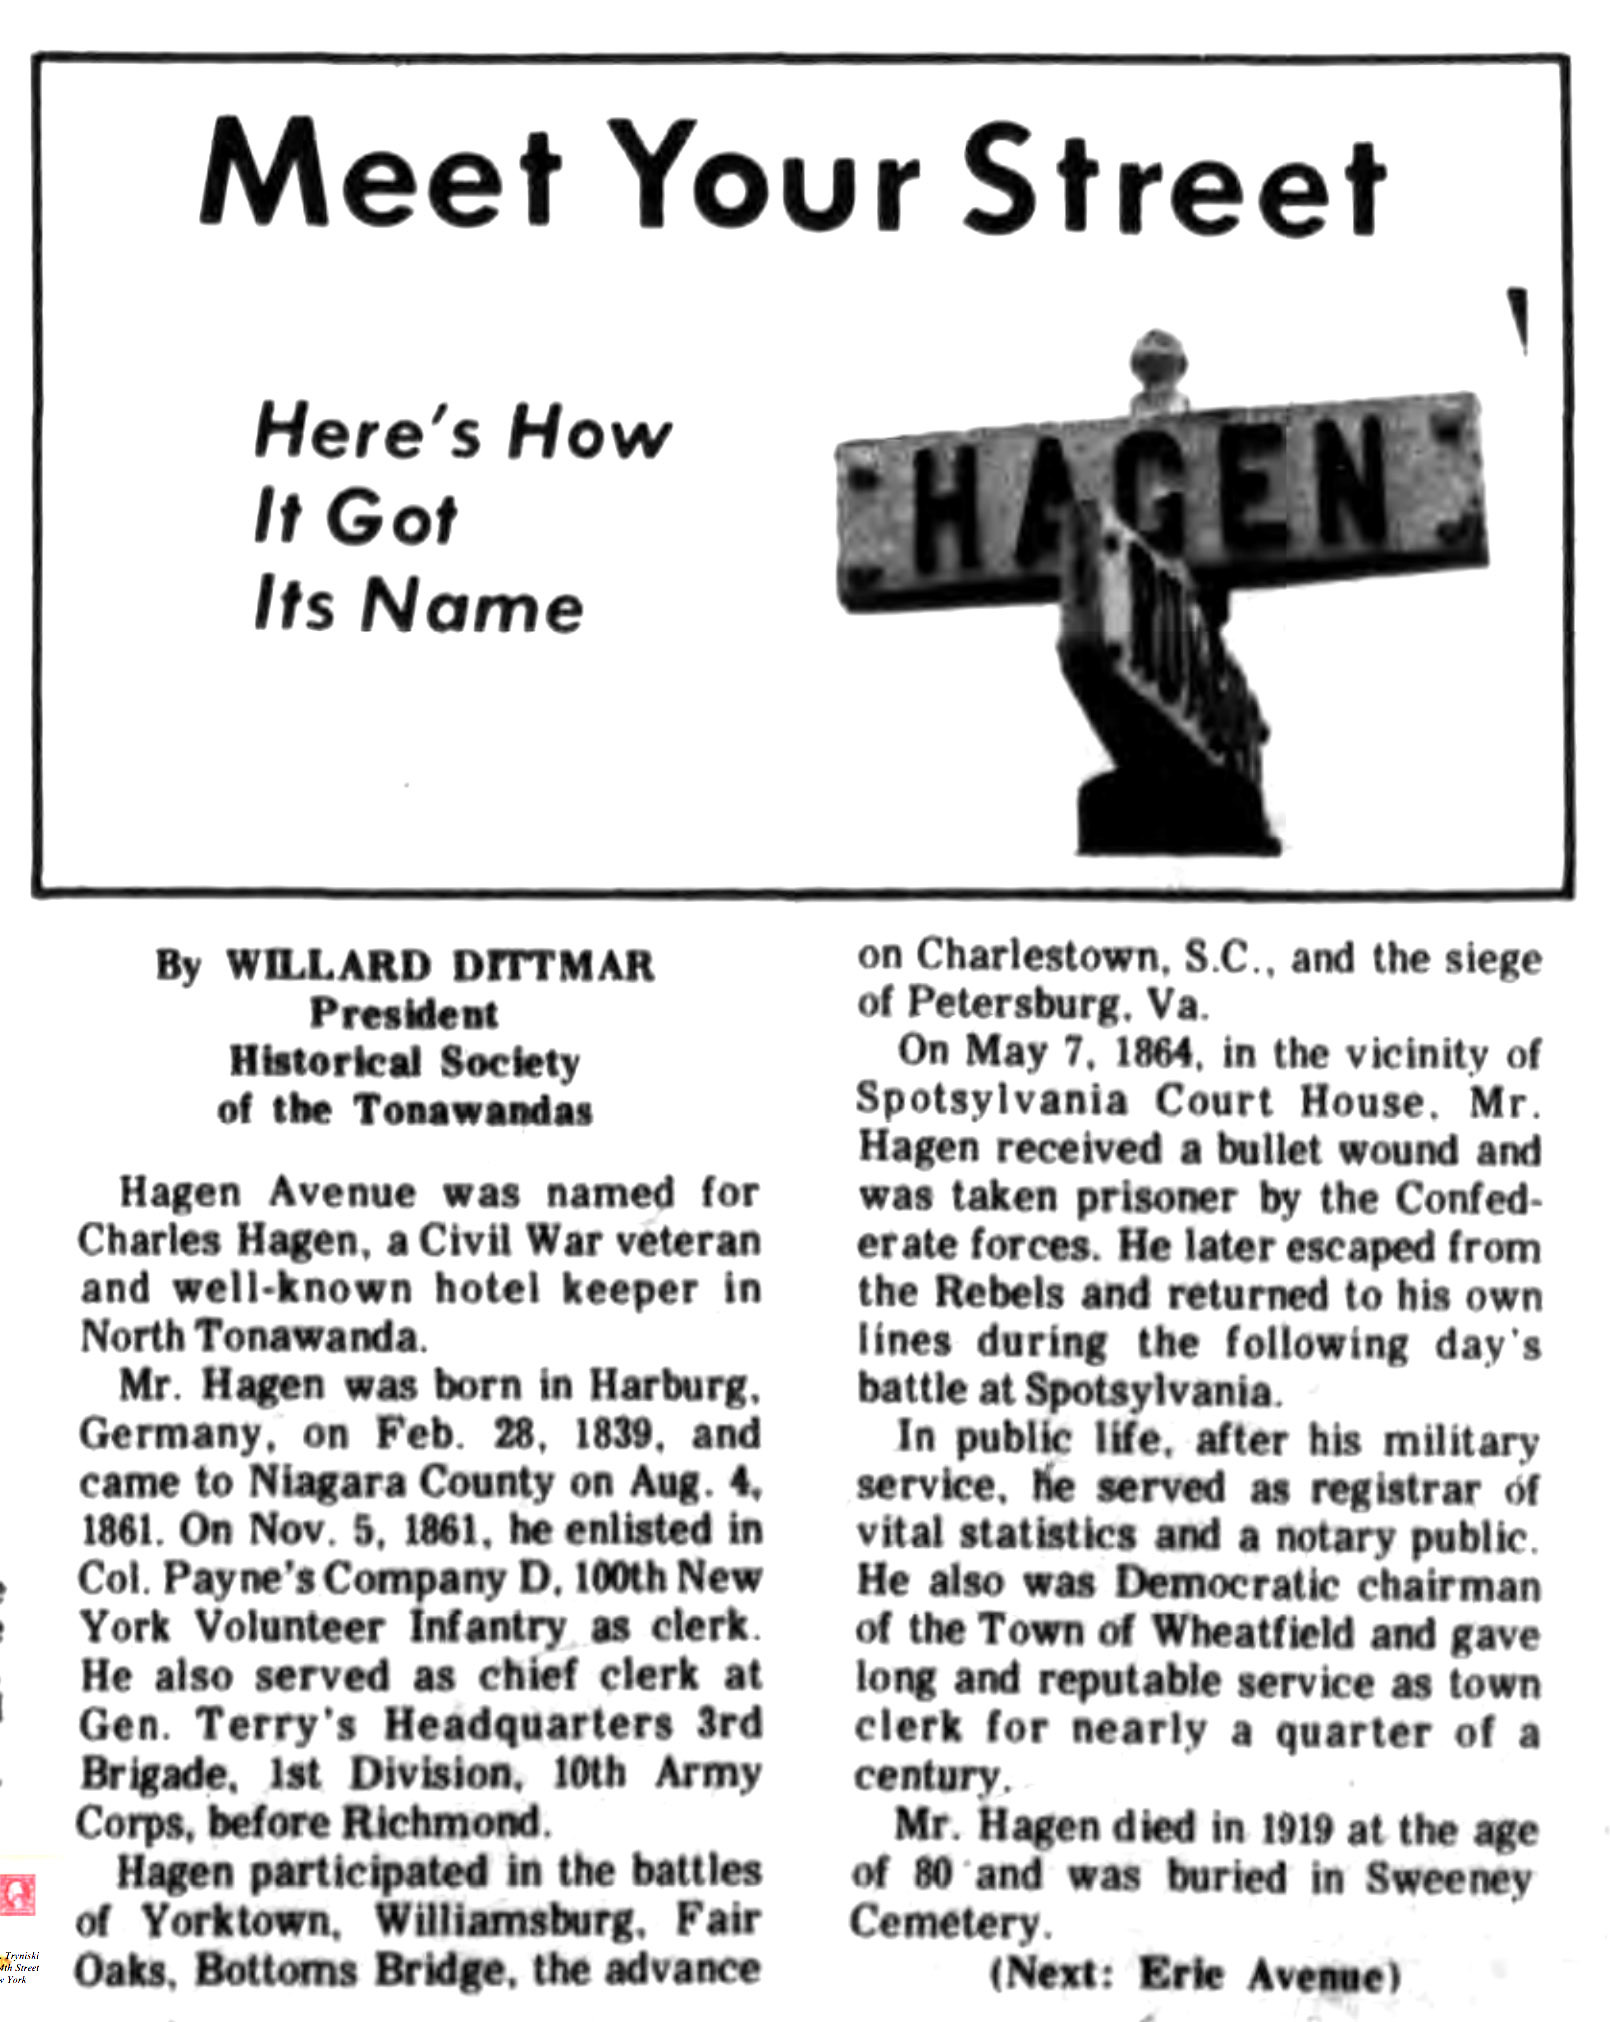 Meet Your Street - Hagen Avenue (Tonawanada News, 1970-08-22).jpg